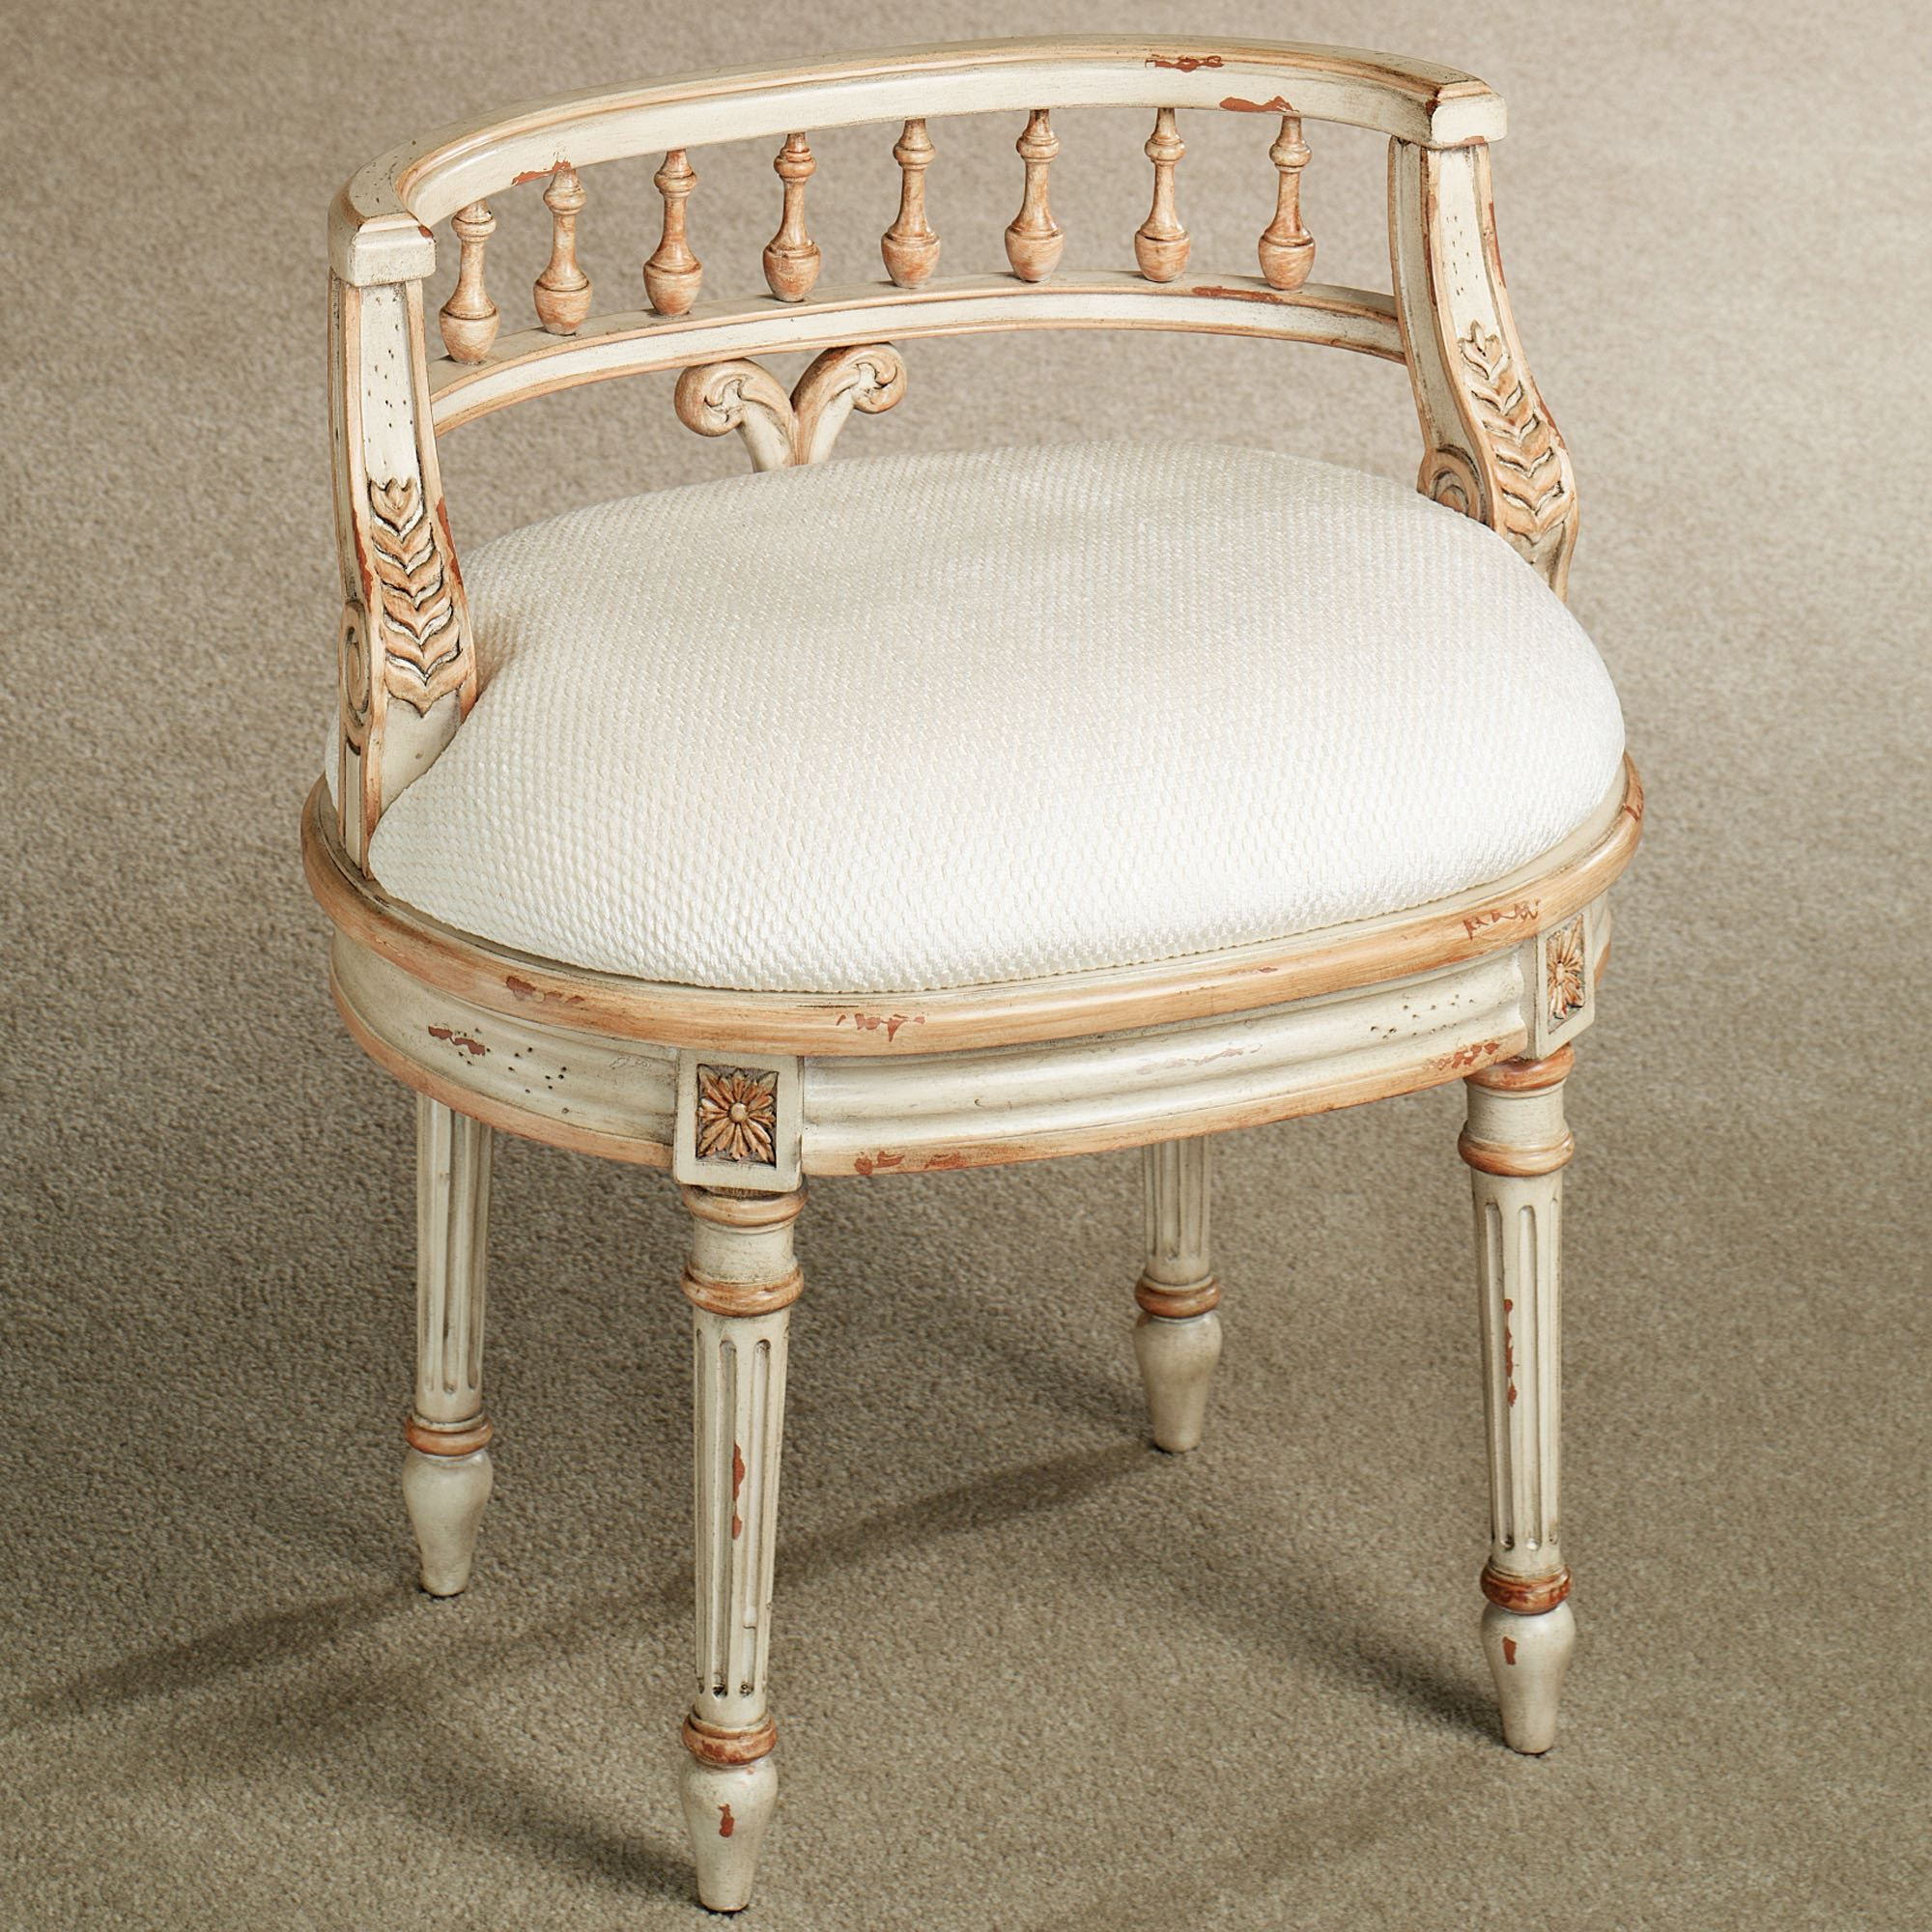 Upholstered Vanity Chair Queensley Upholstered Antique Ivory Vanity Chair